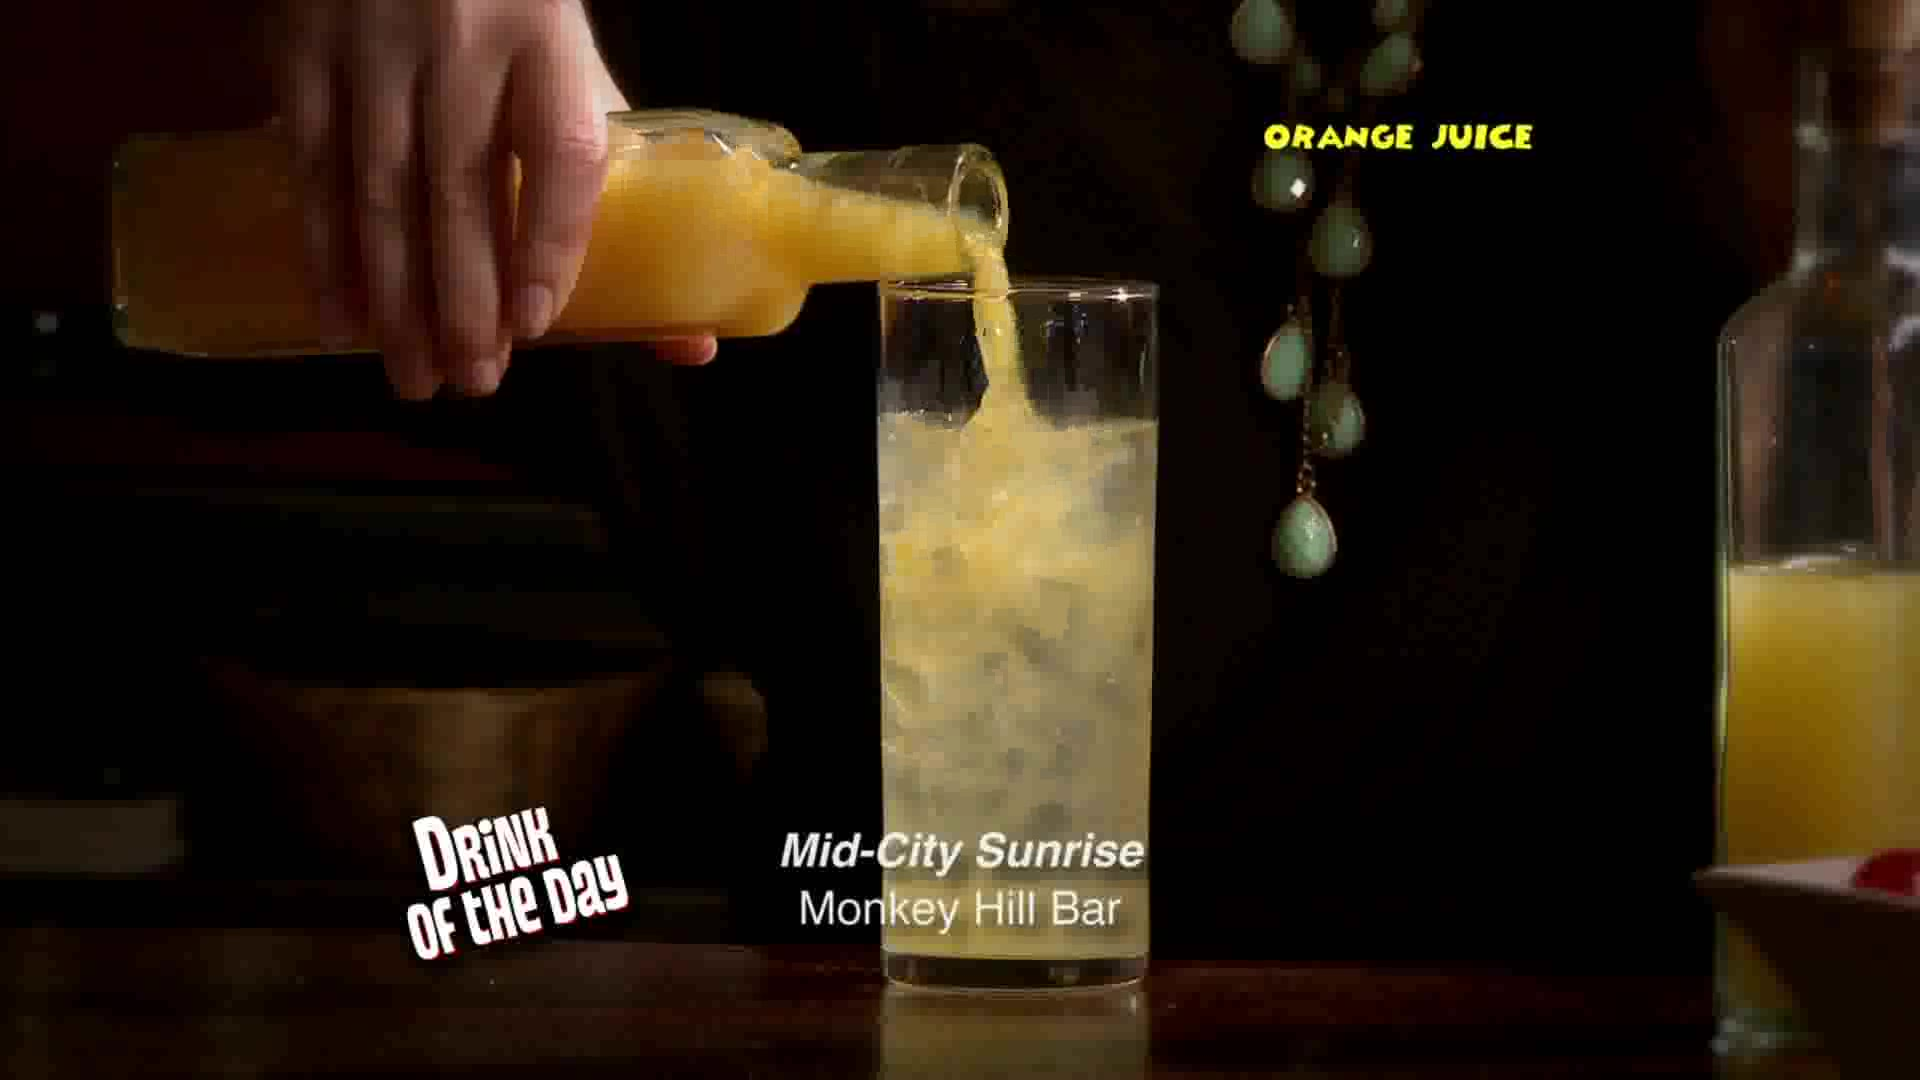 Drink Of The Day: Mid City Sunrise